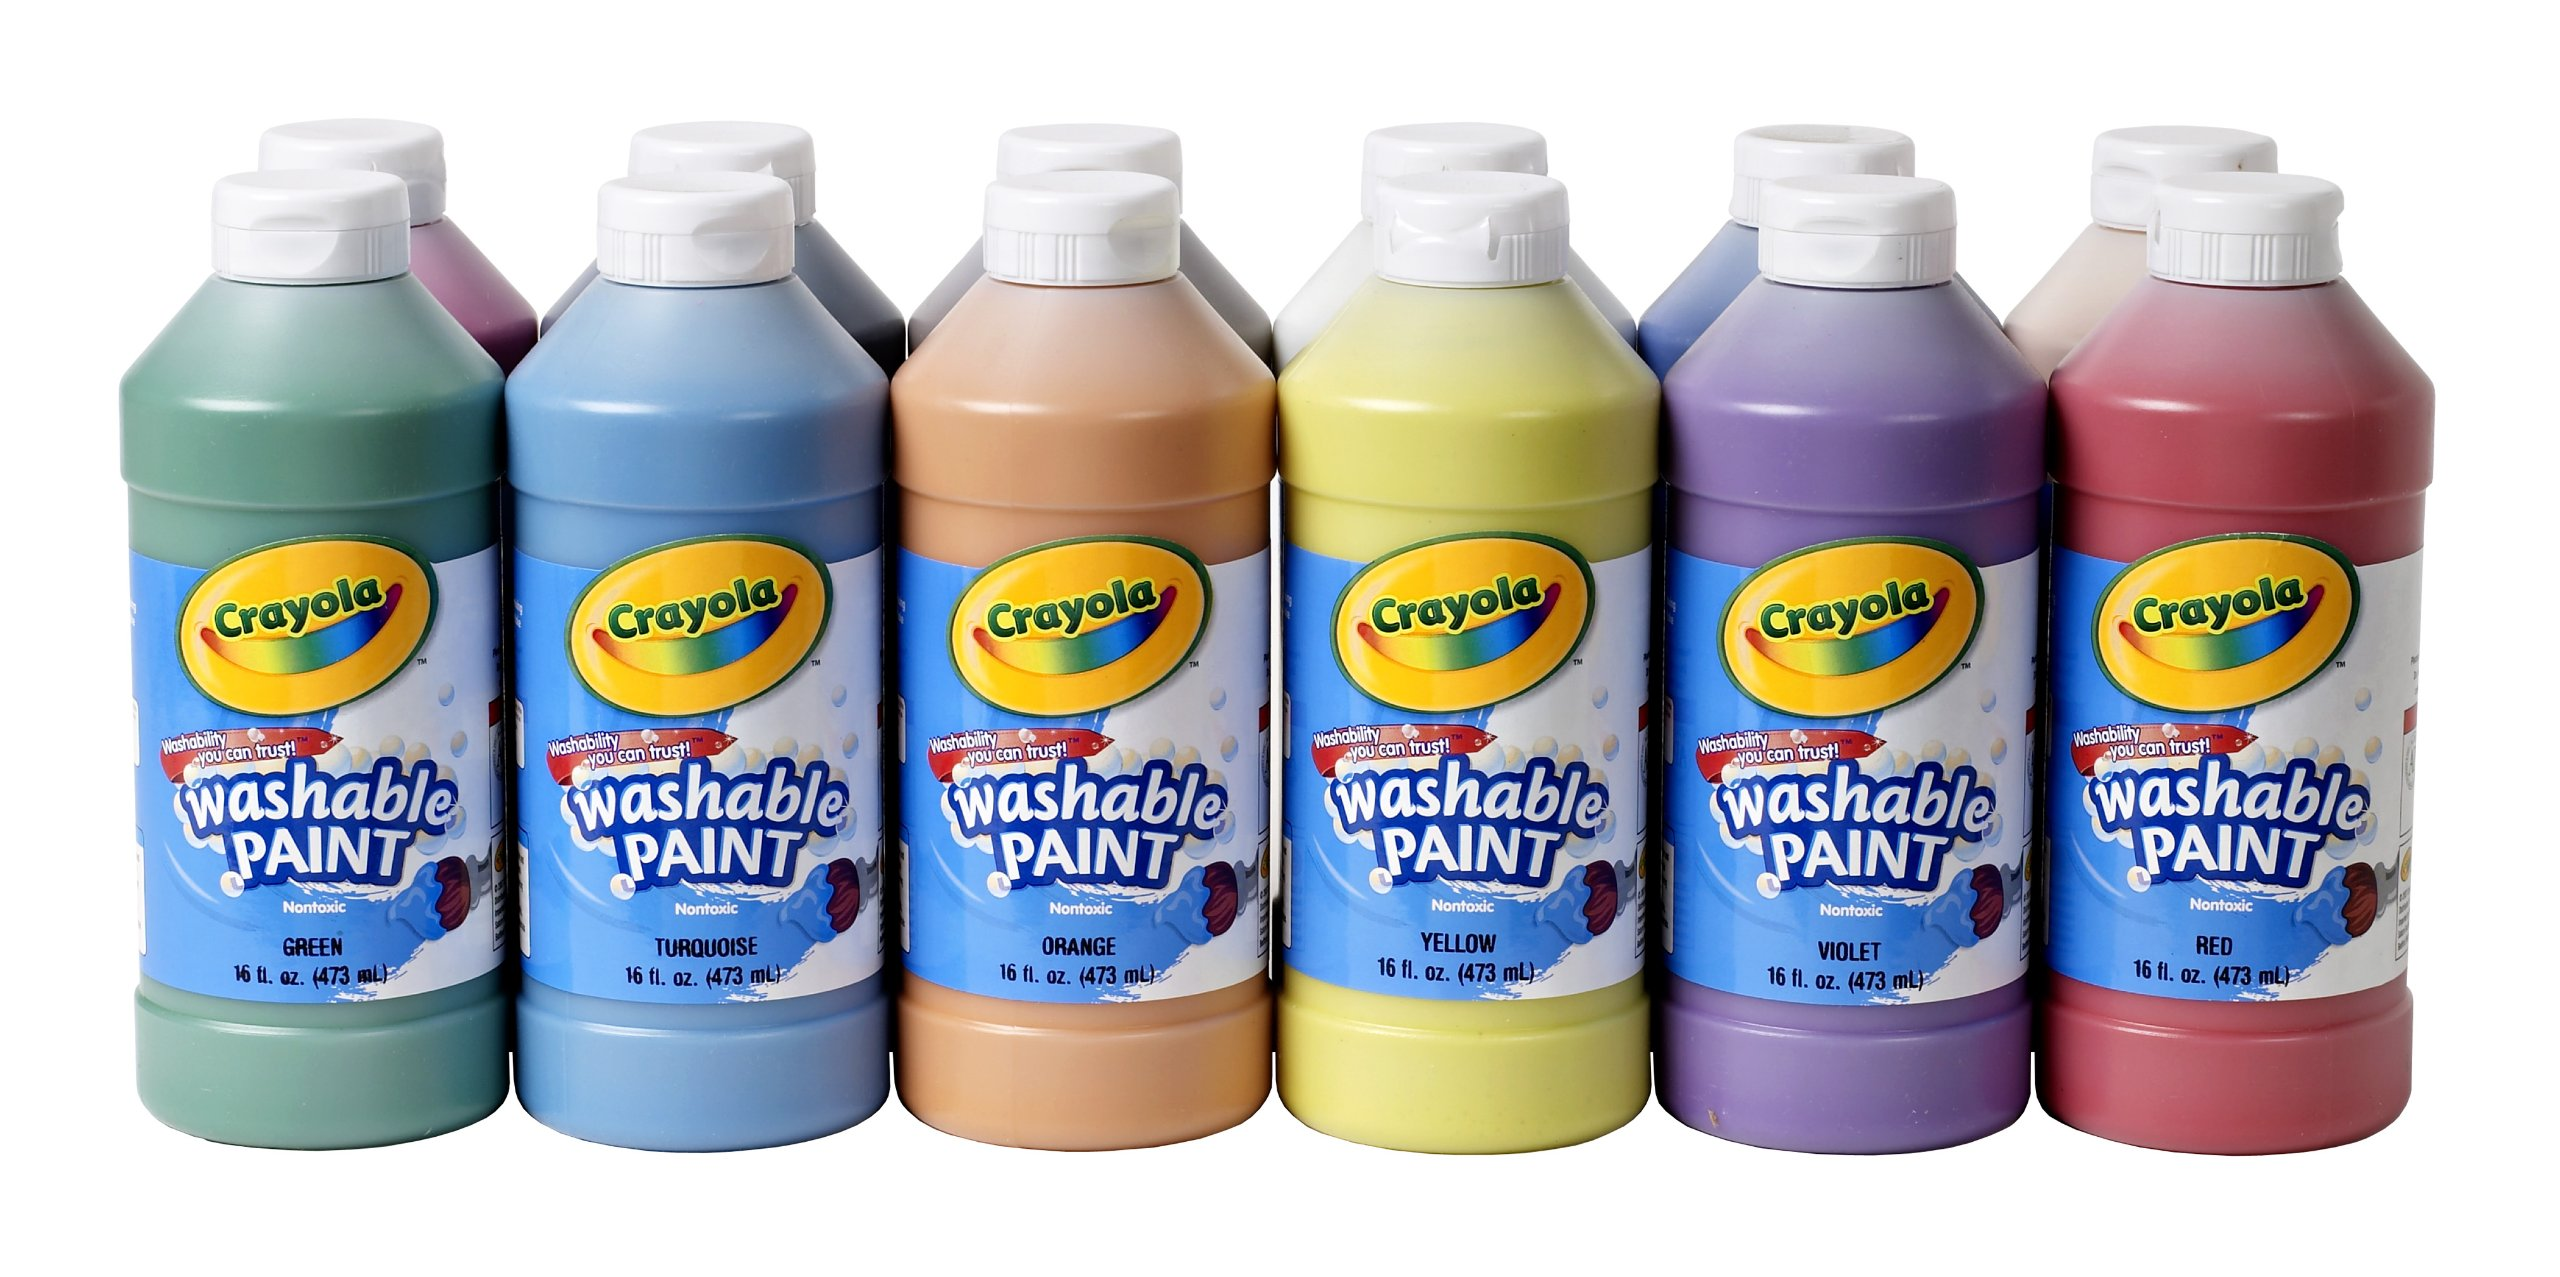 Crayola Washable Paint, 16 Oz Plastic Squeeze Bottles, 1 Each of 12 Assorted Colors by Crayola